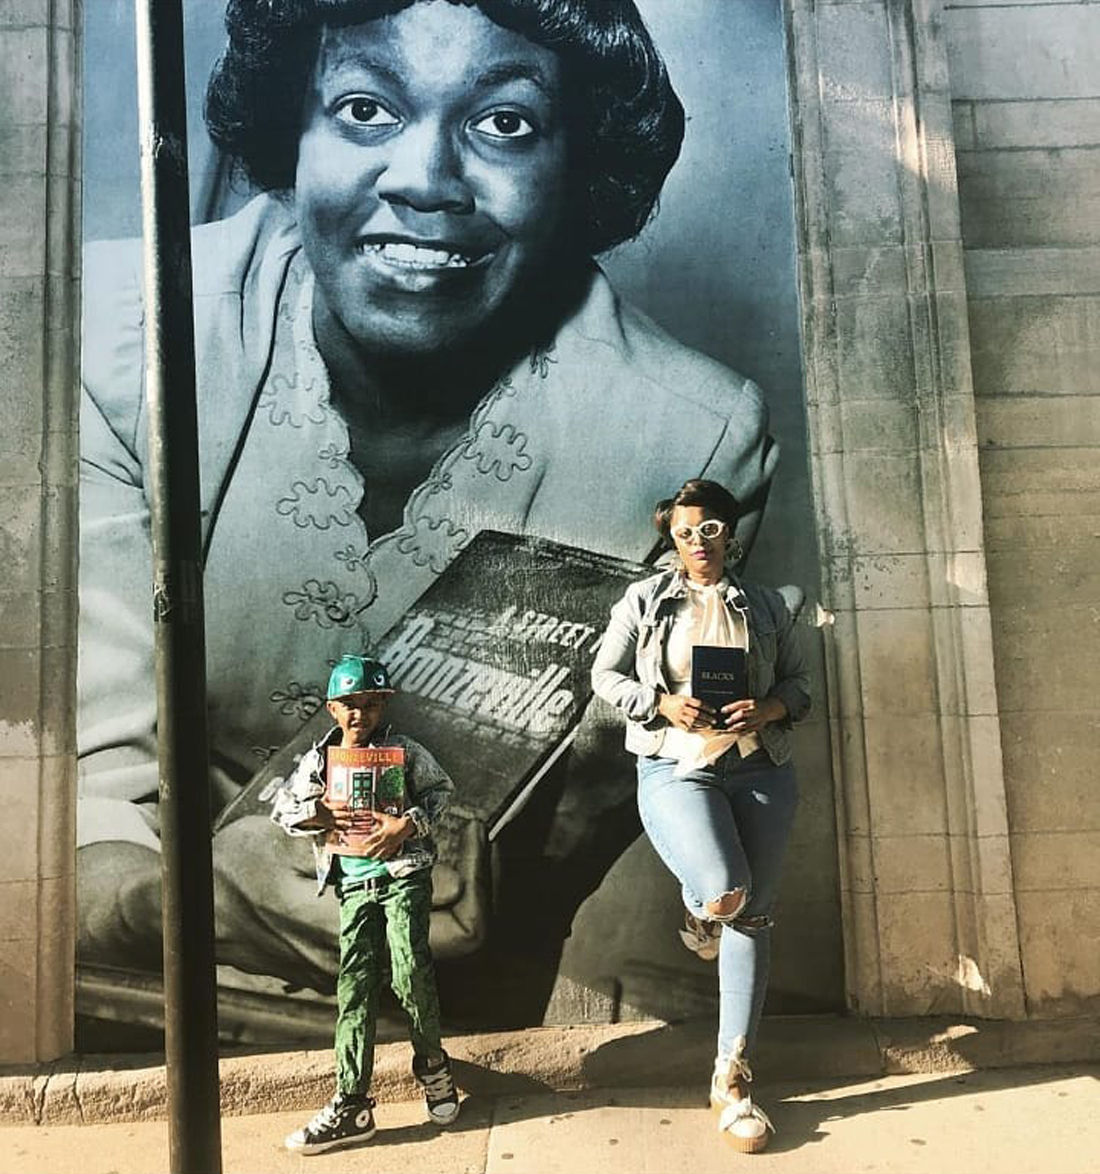 gwen brooks mural selfie chississippi mixtape large cropped copy.jpg